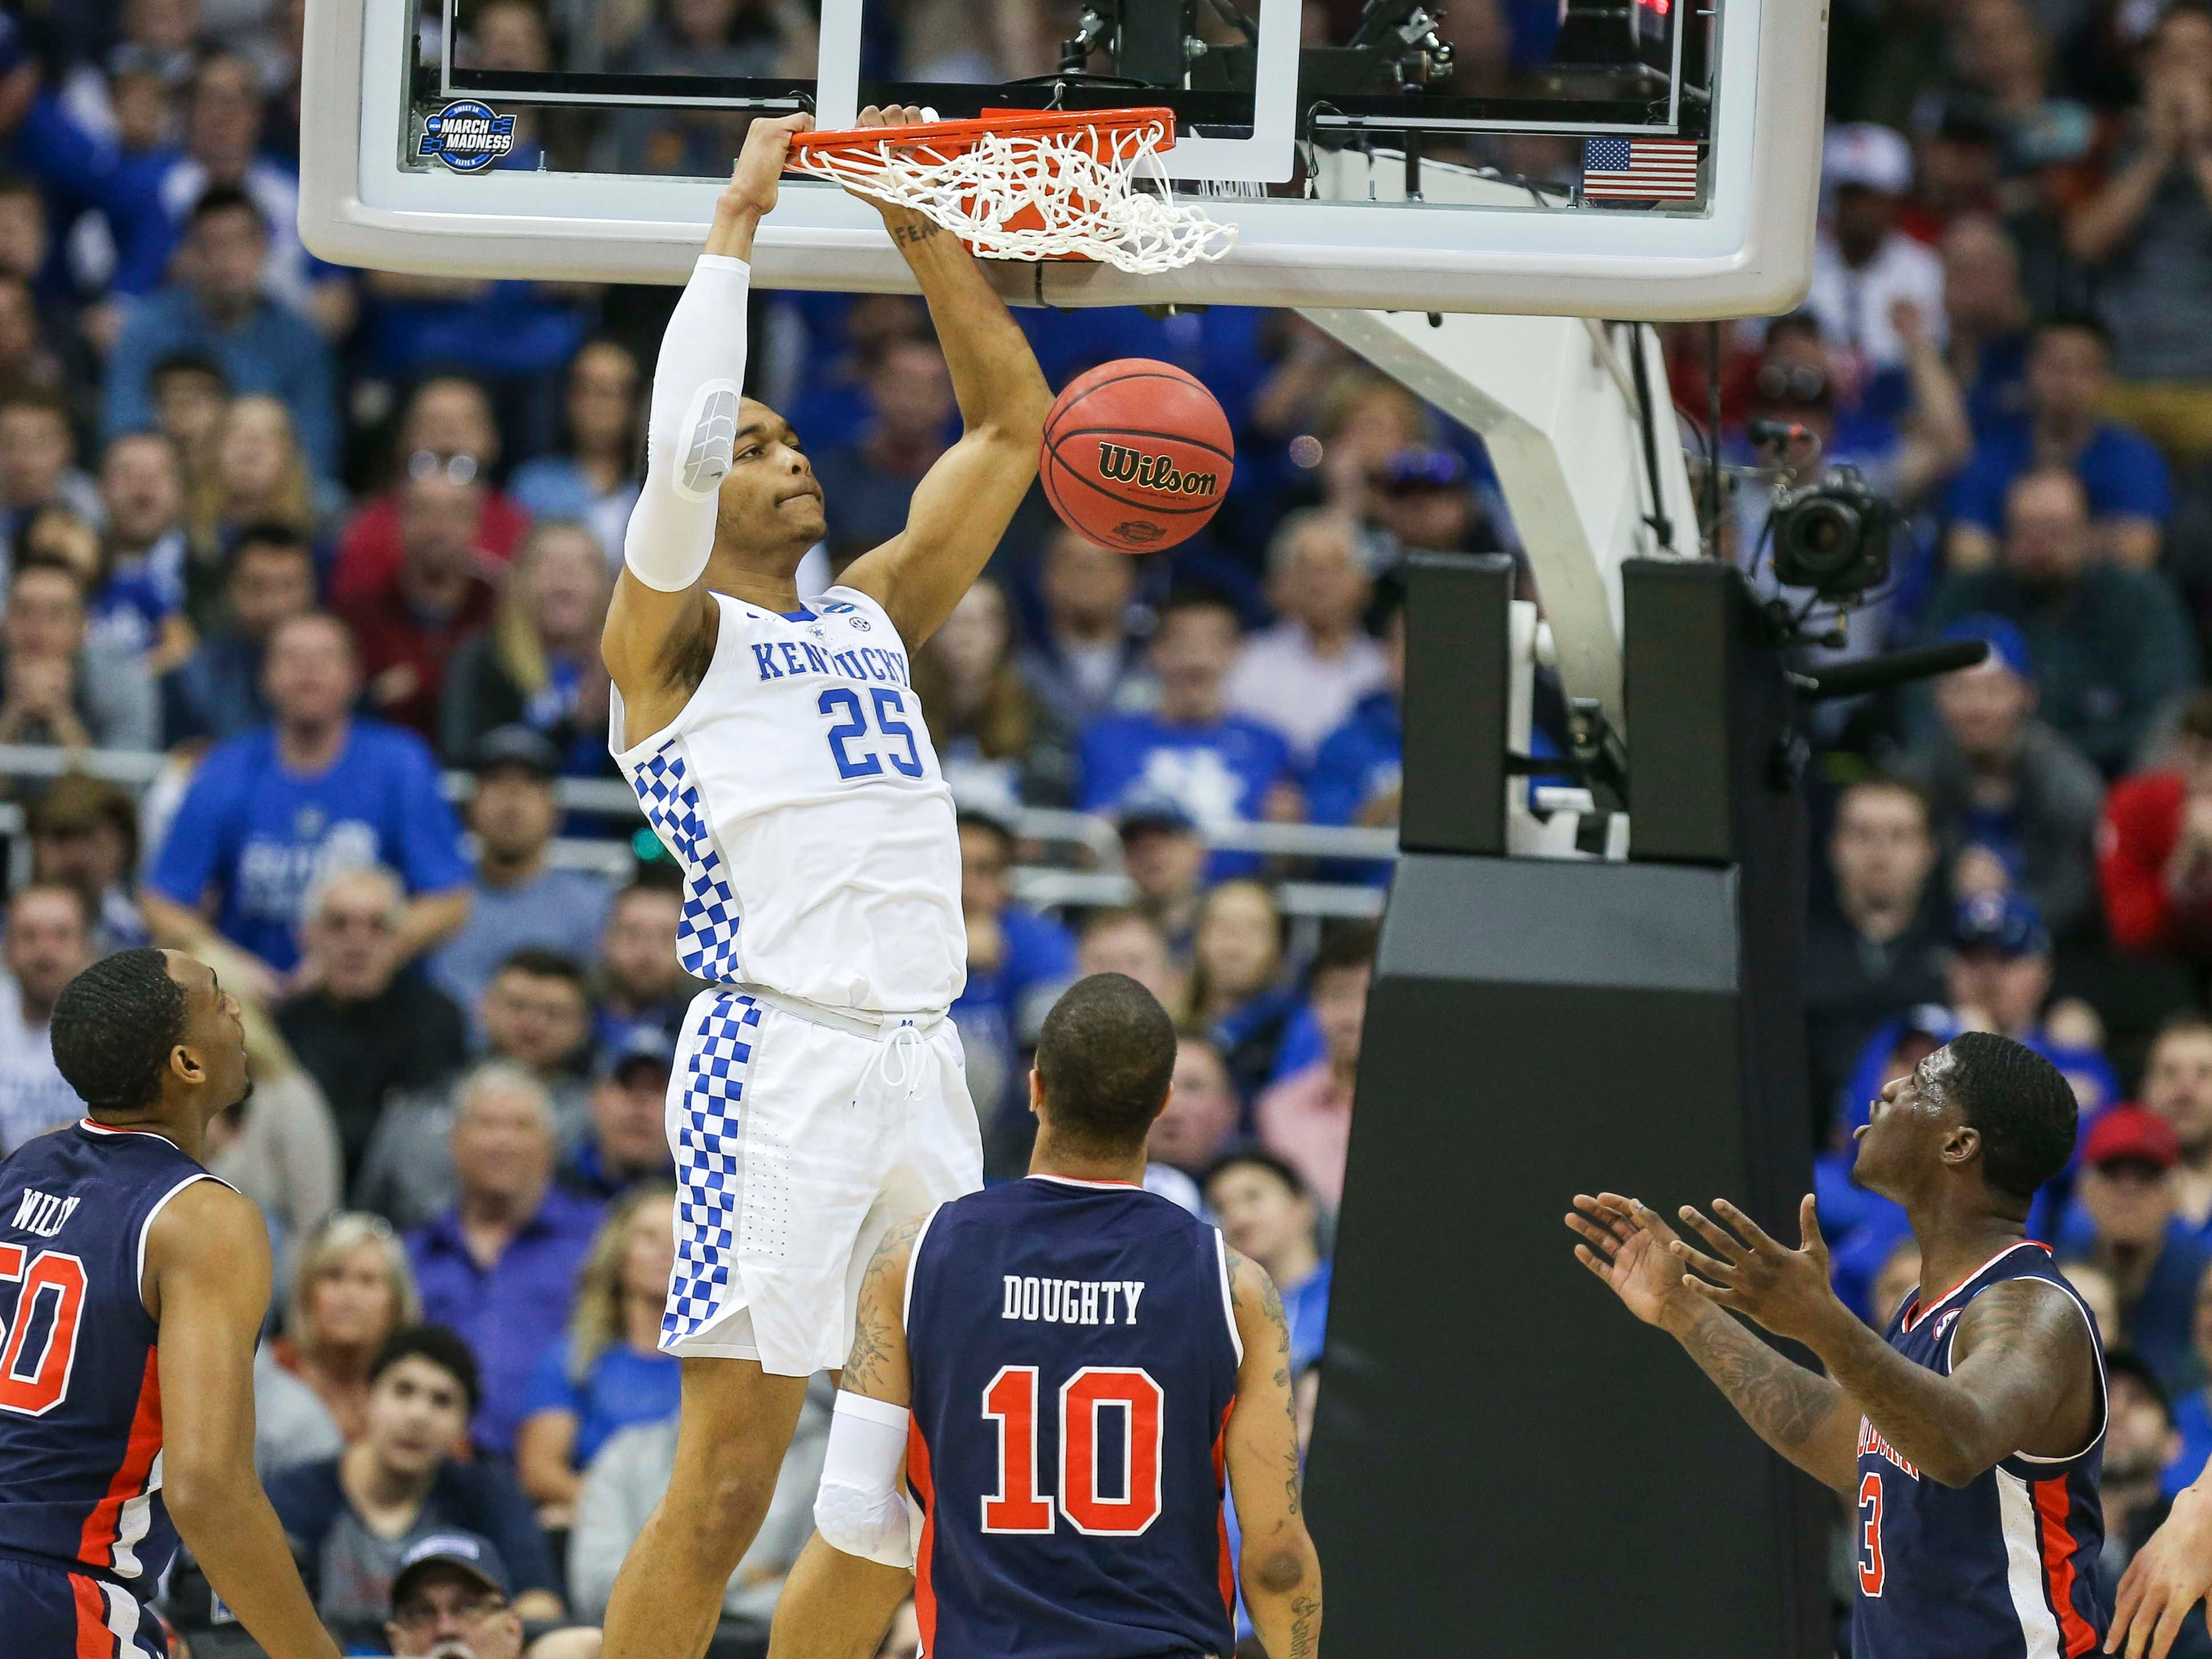 Kentucky's PJ Washington Jr. slams down two in the first half against Auburn Sunday aftermnoon in the Elite Eight. March 31, 2019